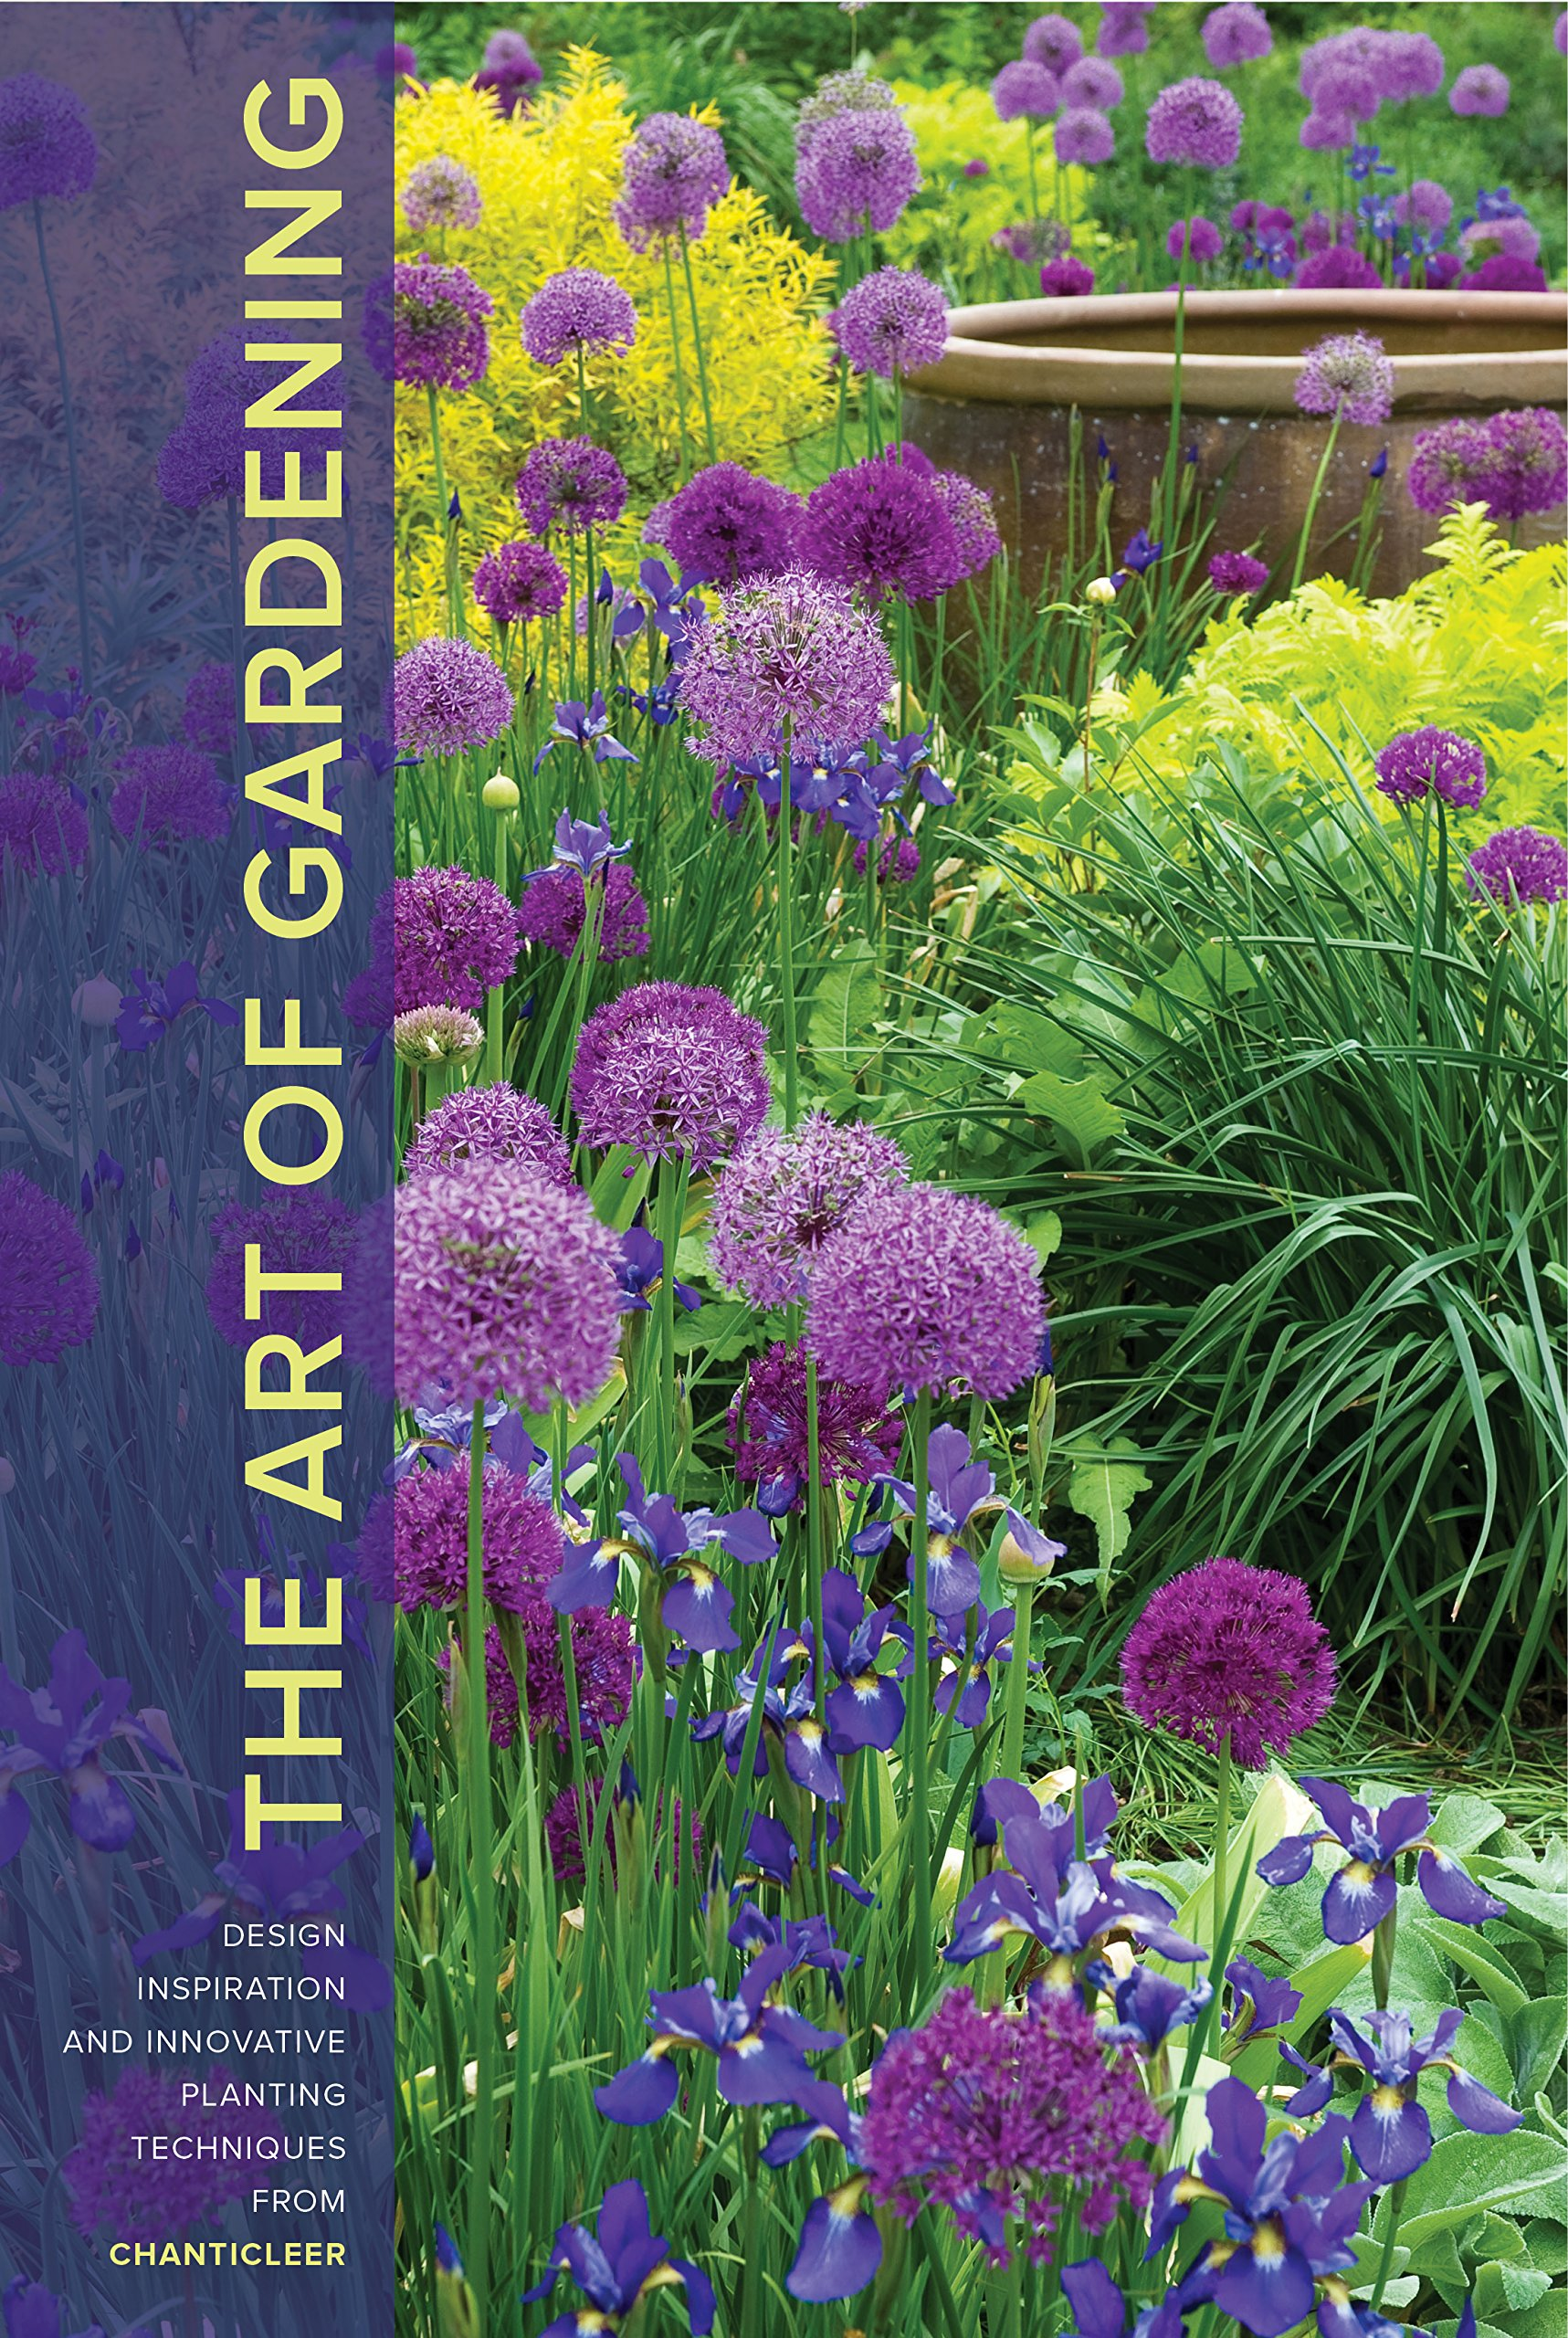 The Art Of Gardening: Design Inspiration And Innovative Planting Techniques  From Chanticleer: R. William Thomas: 9781604695441: Amazon.com: Books